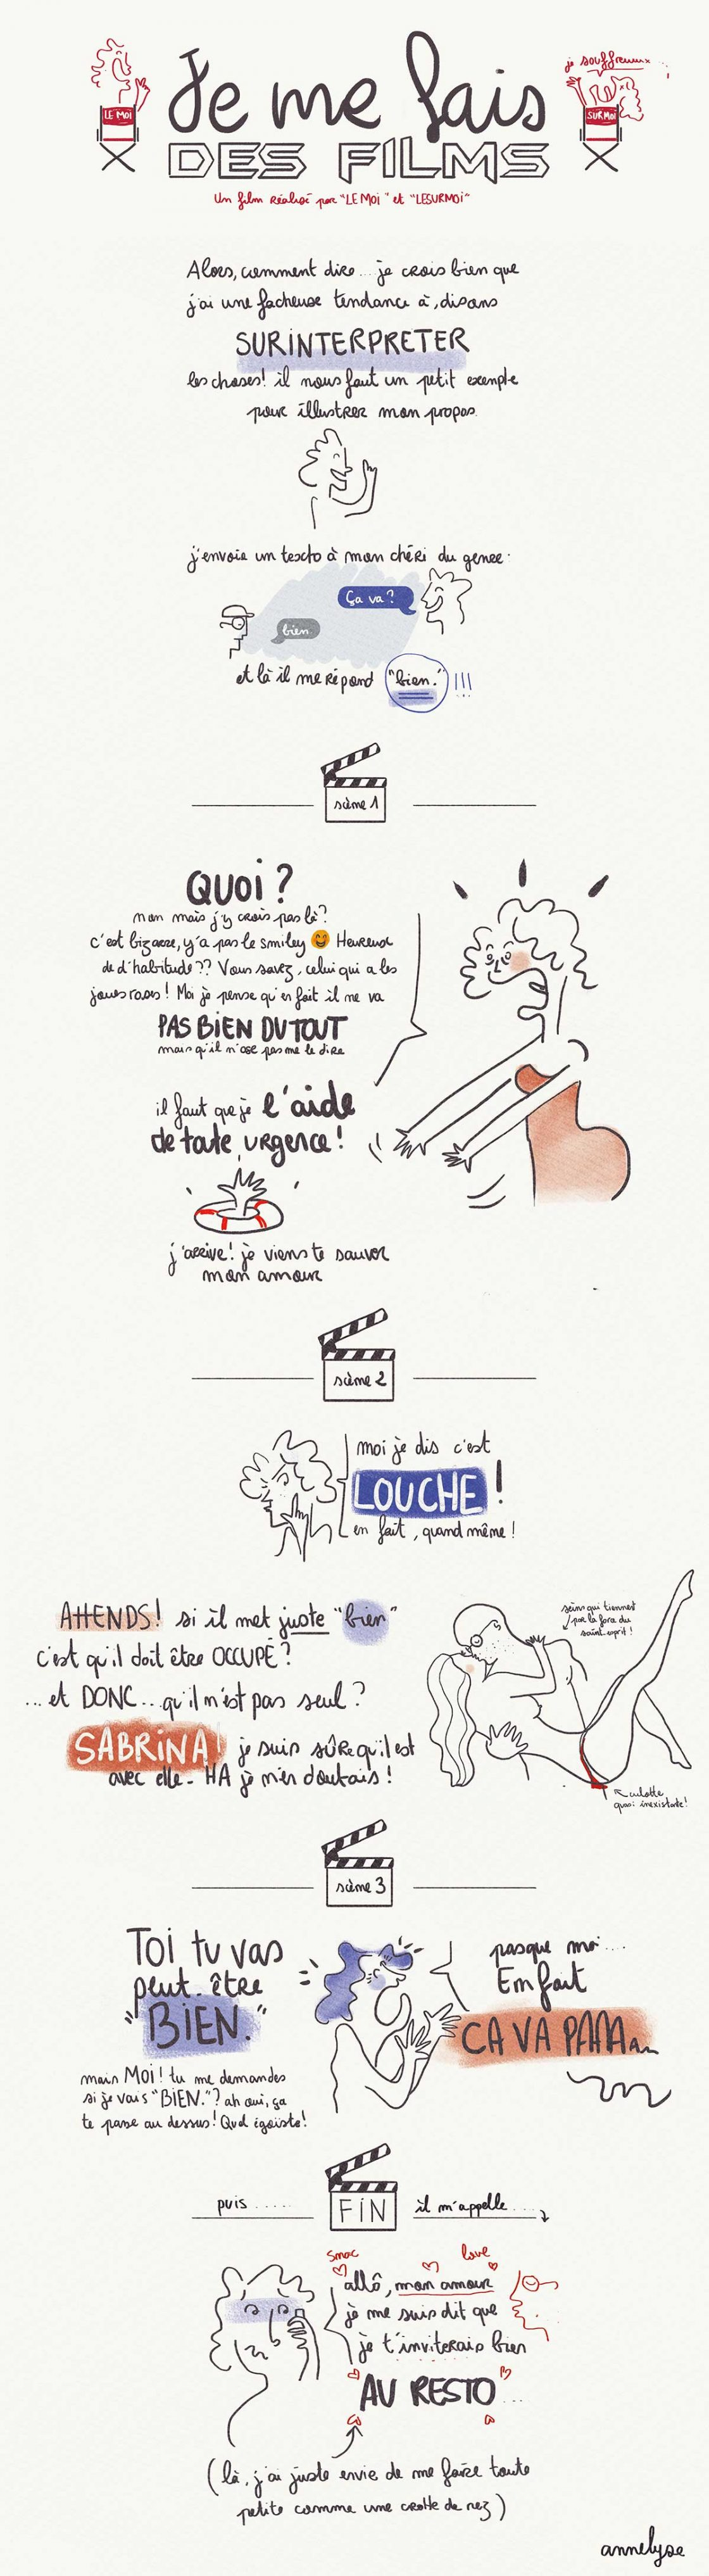 """je me fais des films"" illustration by annelyse.fr"